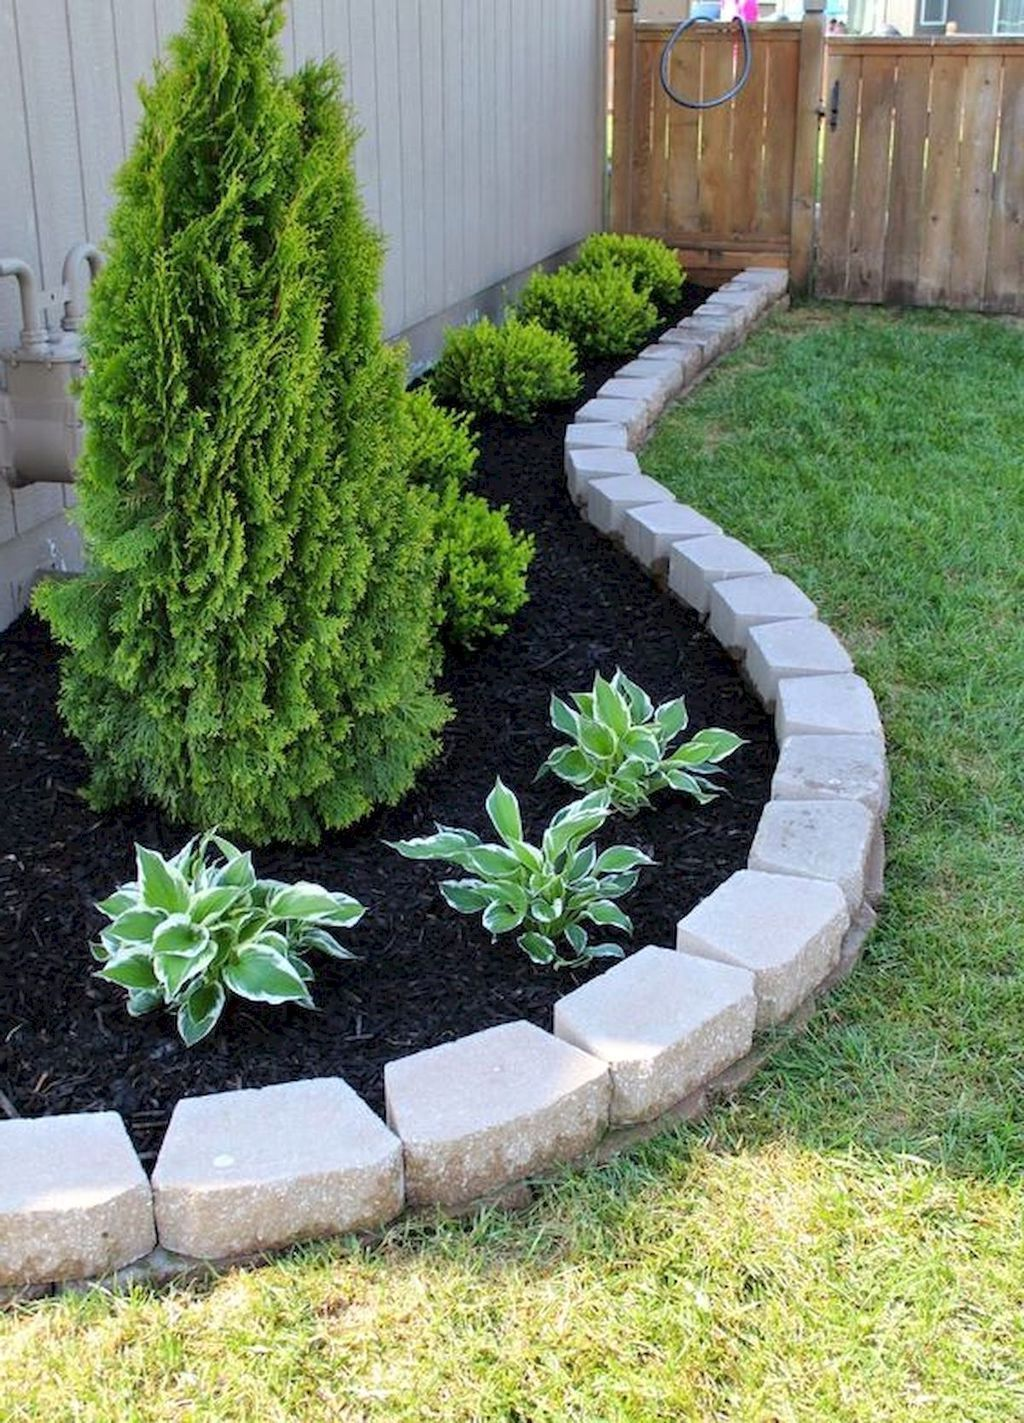 40 Modern Front Yard Landscaping Ideas On A Budget 36 Best Home Design Ideas Front House Landscaping Diy Landscaping Front Garden Landscape